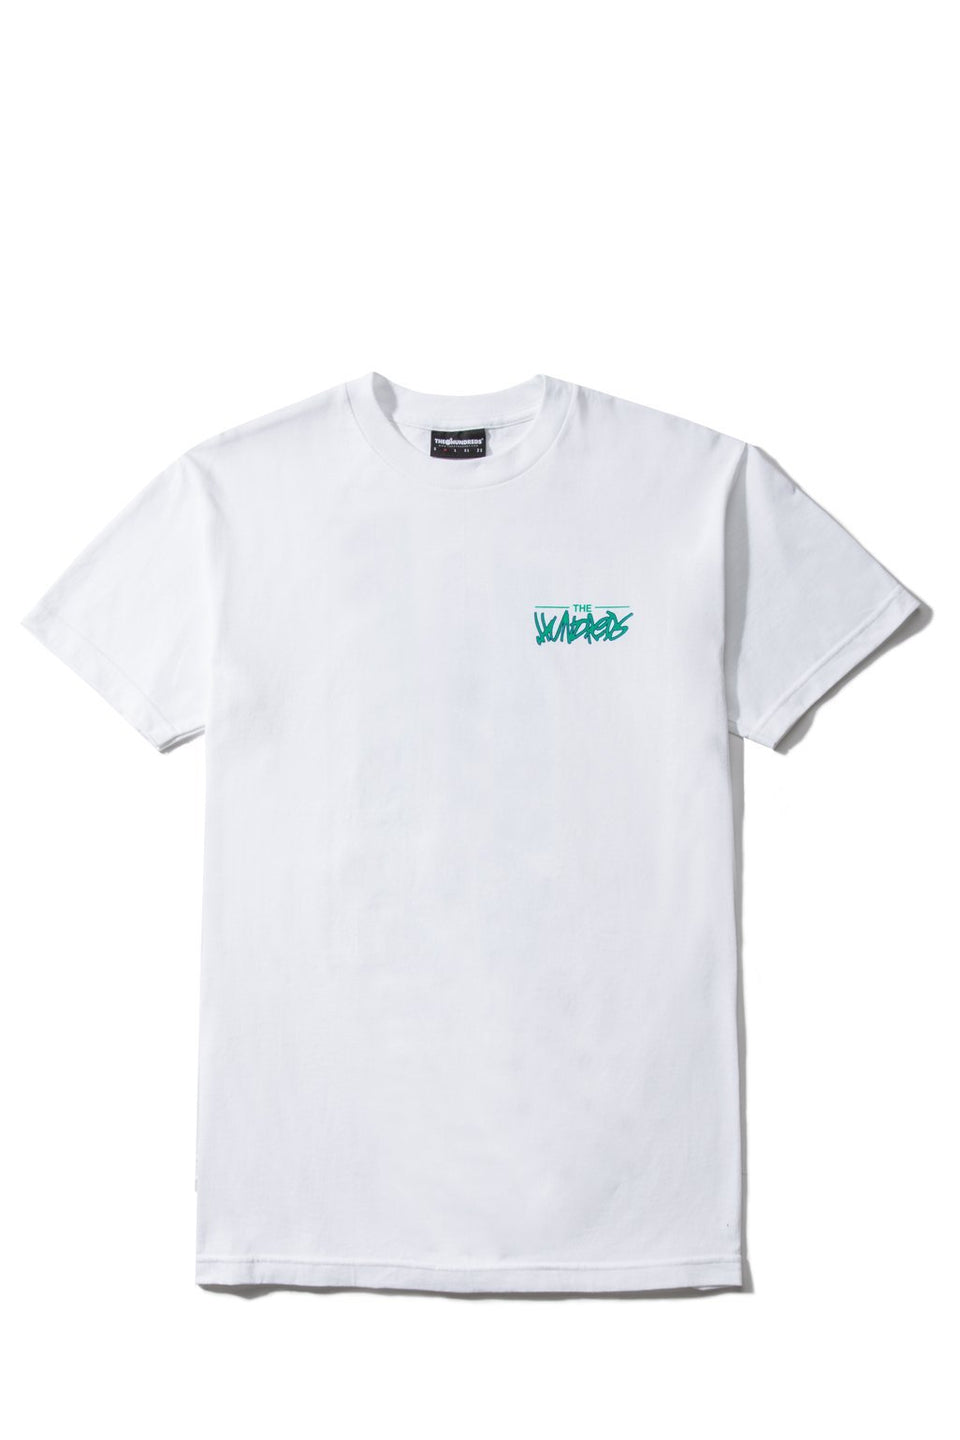 Non-Stop T-Shirt-TOPS-The Hundreds UK